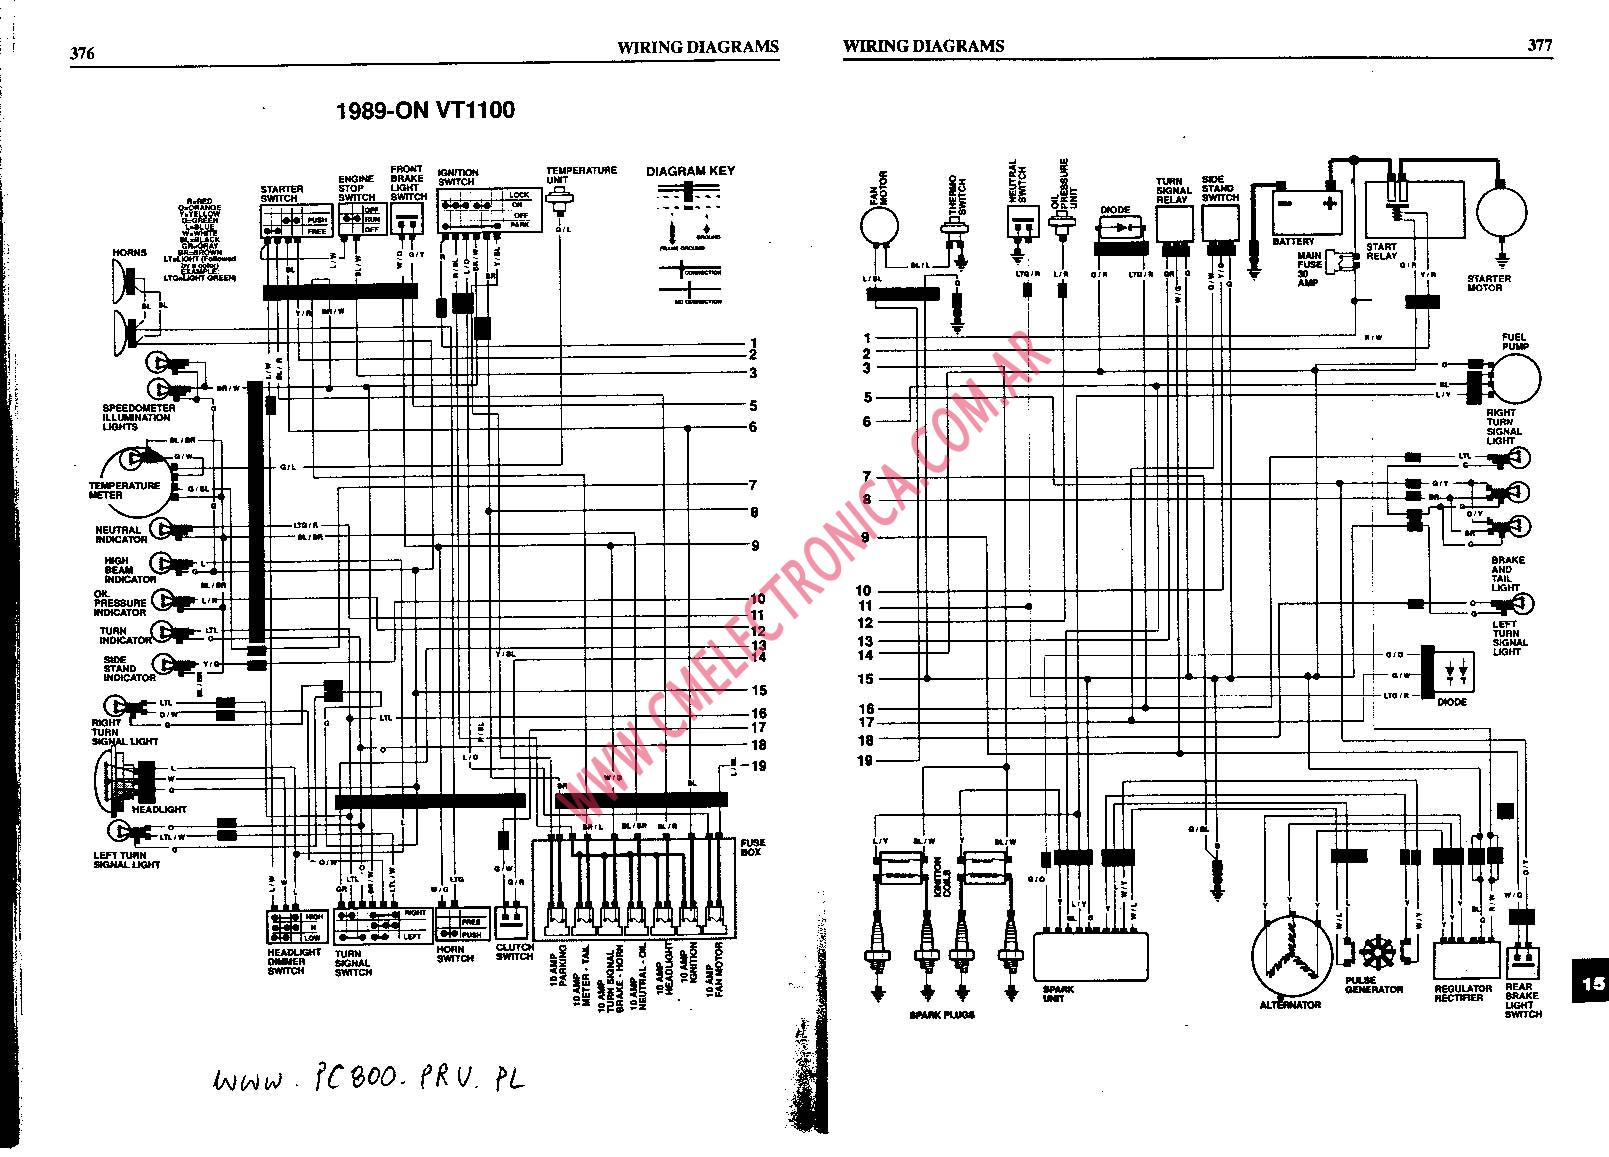 Wiring Diagram Honda Shadow 1100 on 1997 dodge ram 1500 headlight wire schematics